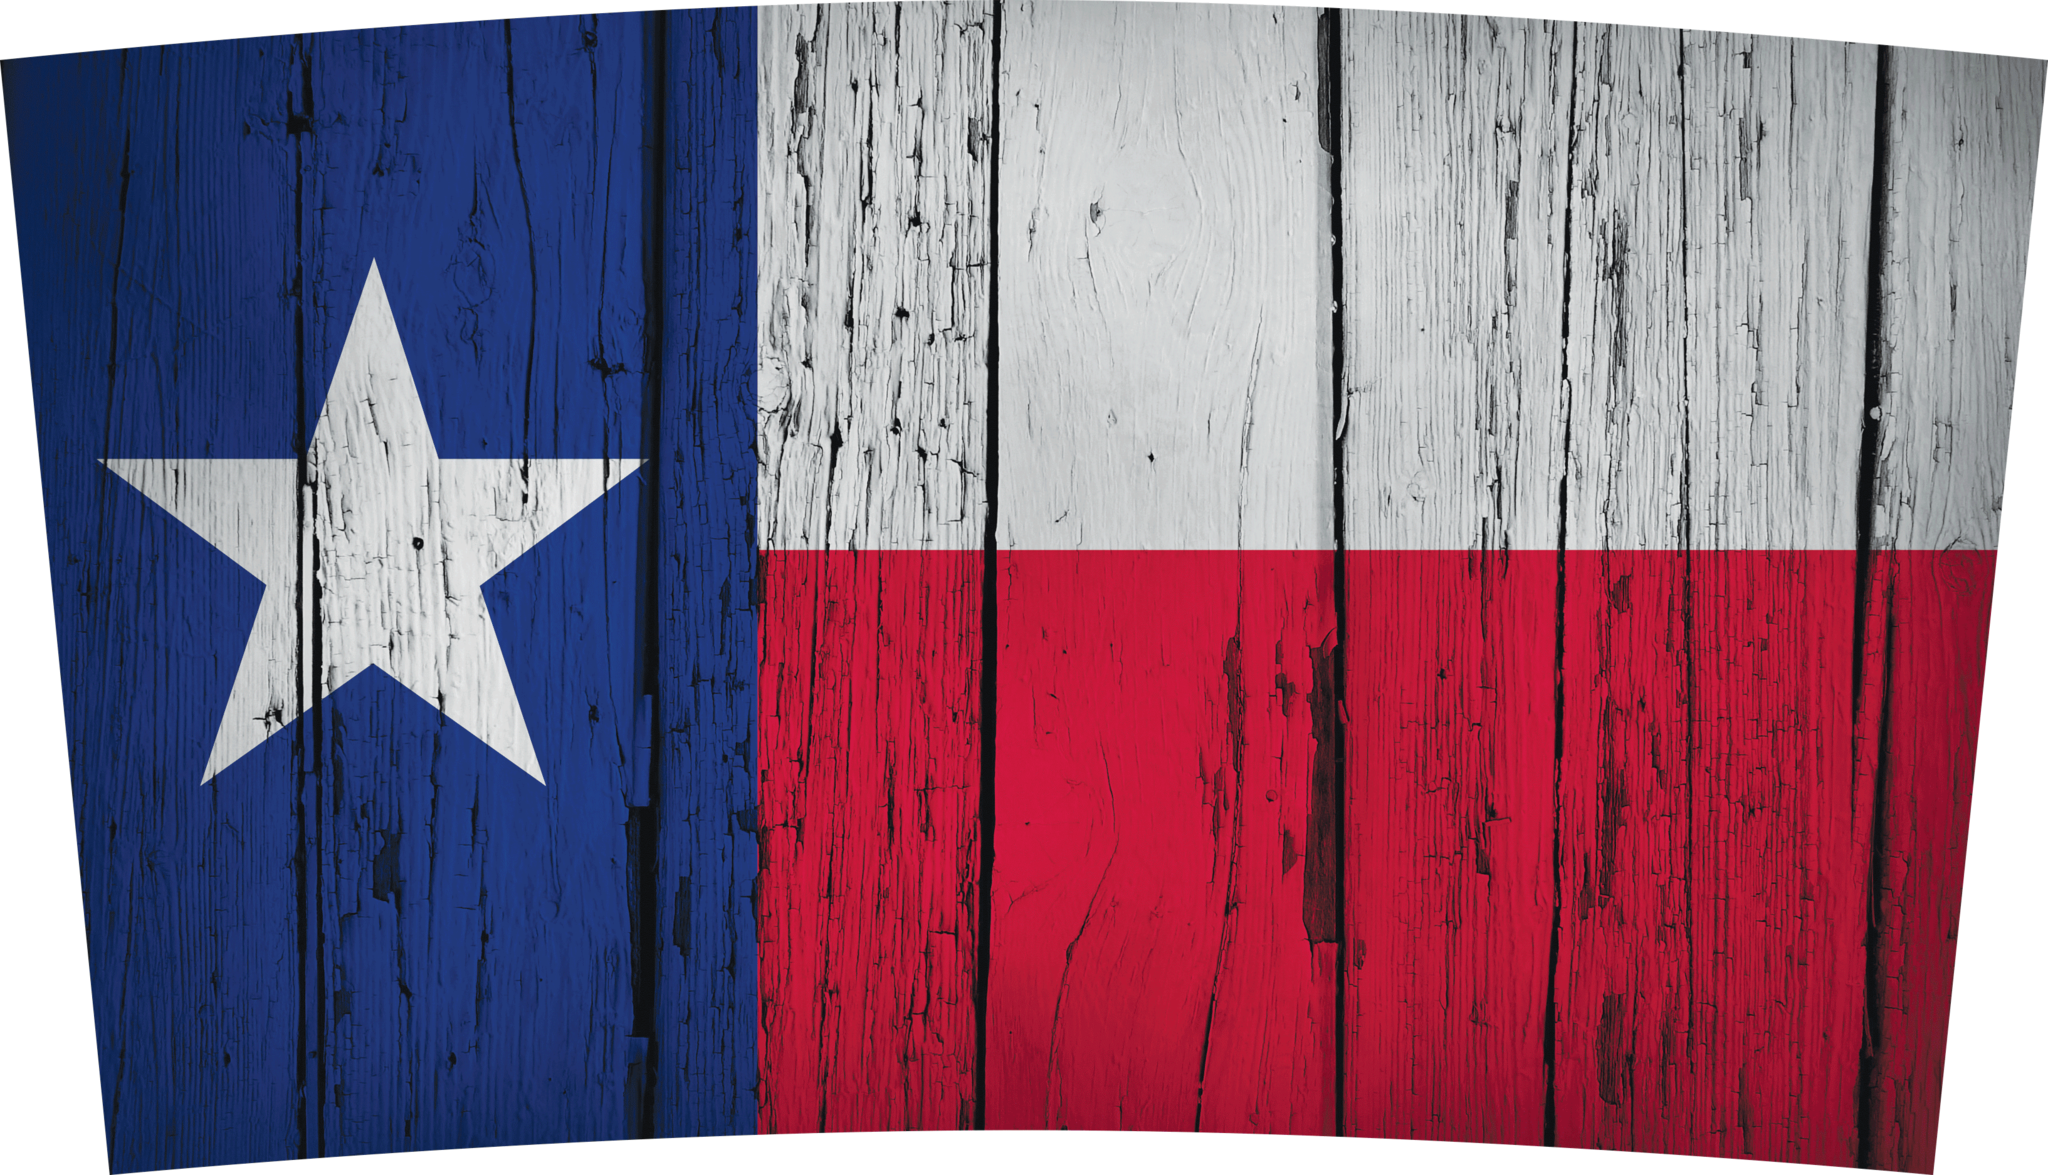 Texas Recovery Act